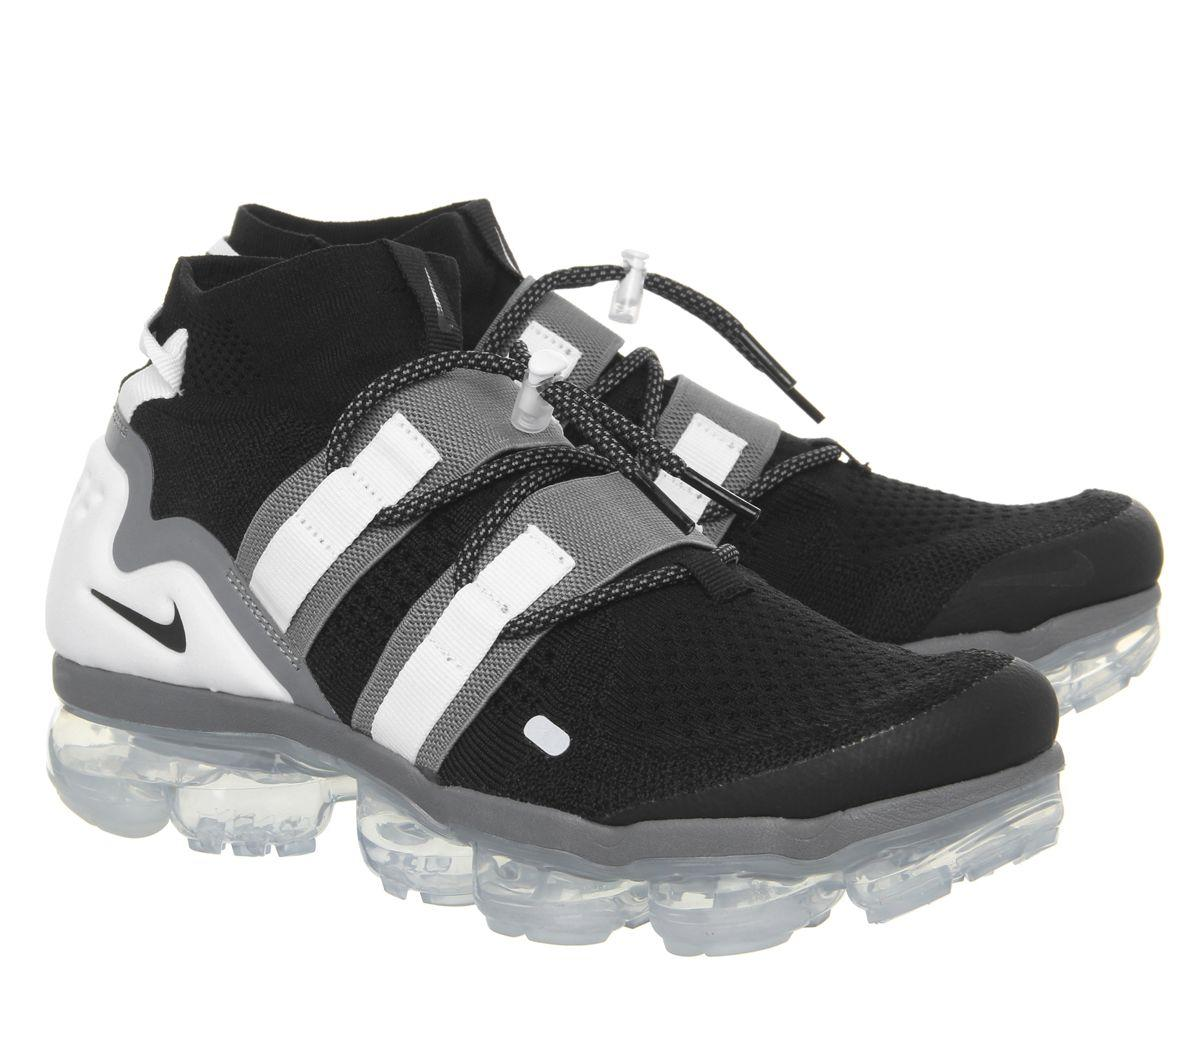 03a3f13153a8 Lyst - Nike Air Vapormax Flyknit Utility Trainers in Black for Men